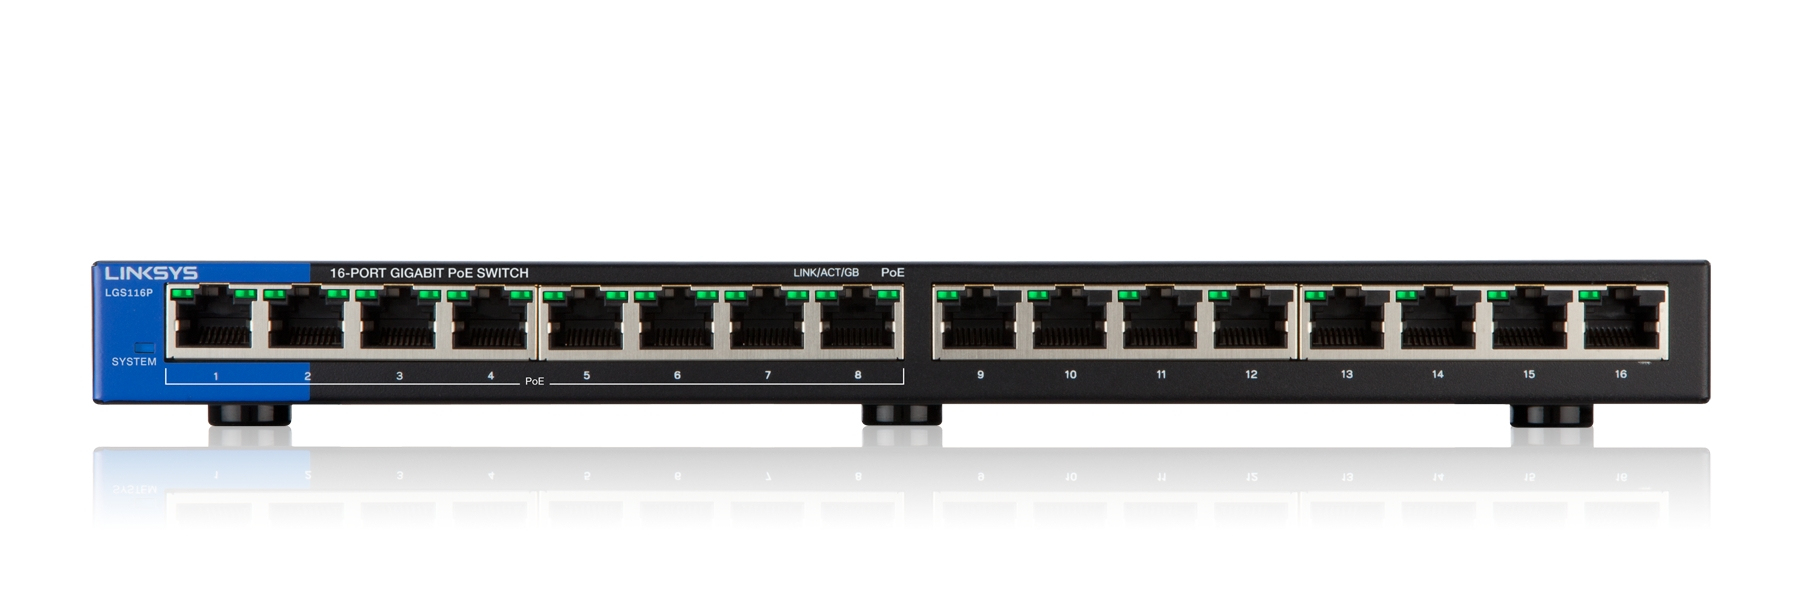 LINKSYS 16-PORT DESKTOP GIGABIT POE SWITCH (LGS116P)